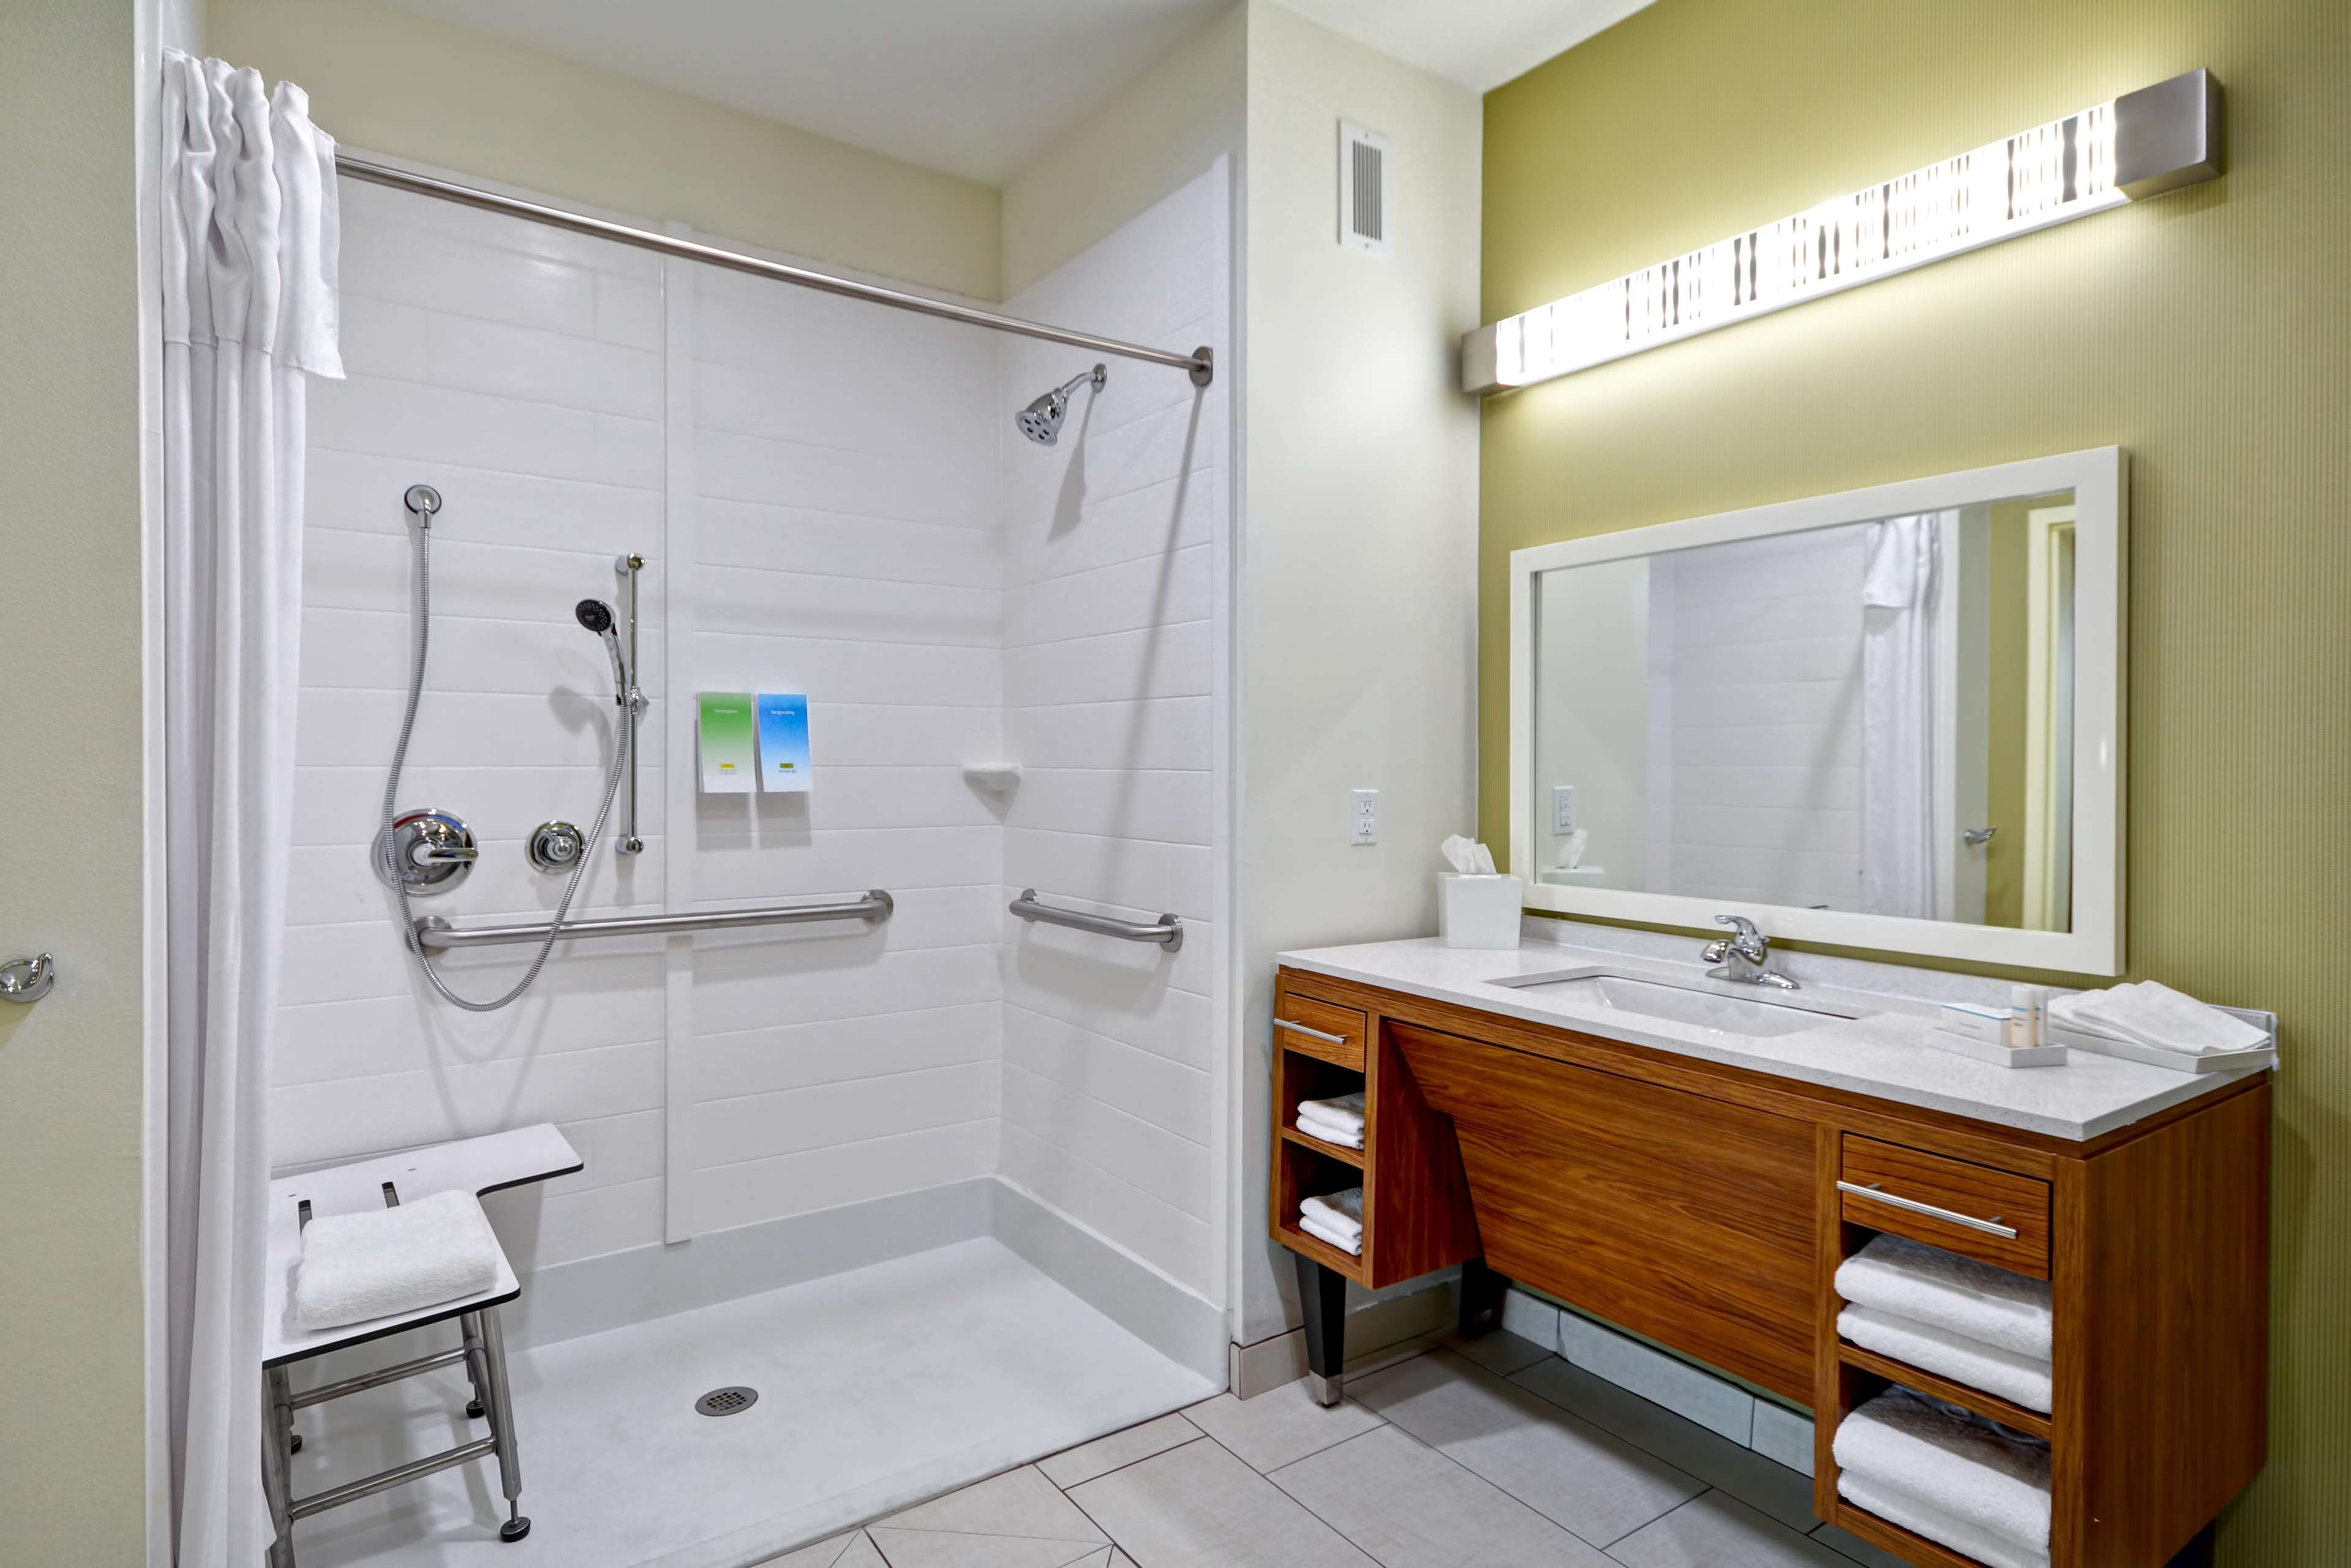 Home2 Suites by Hilton Fort Worth Southwest Cityview image 15